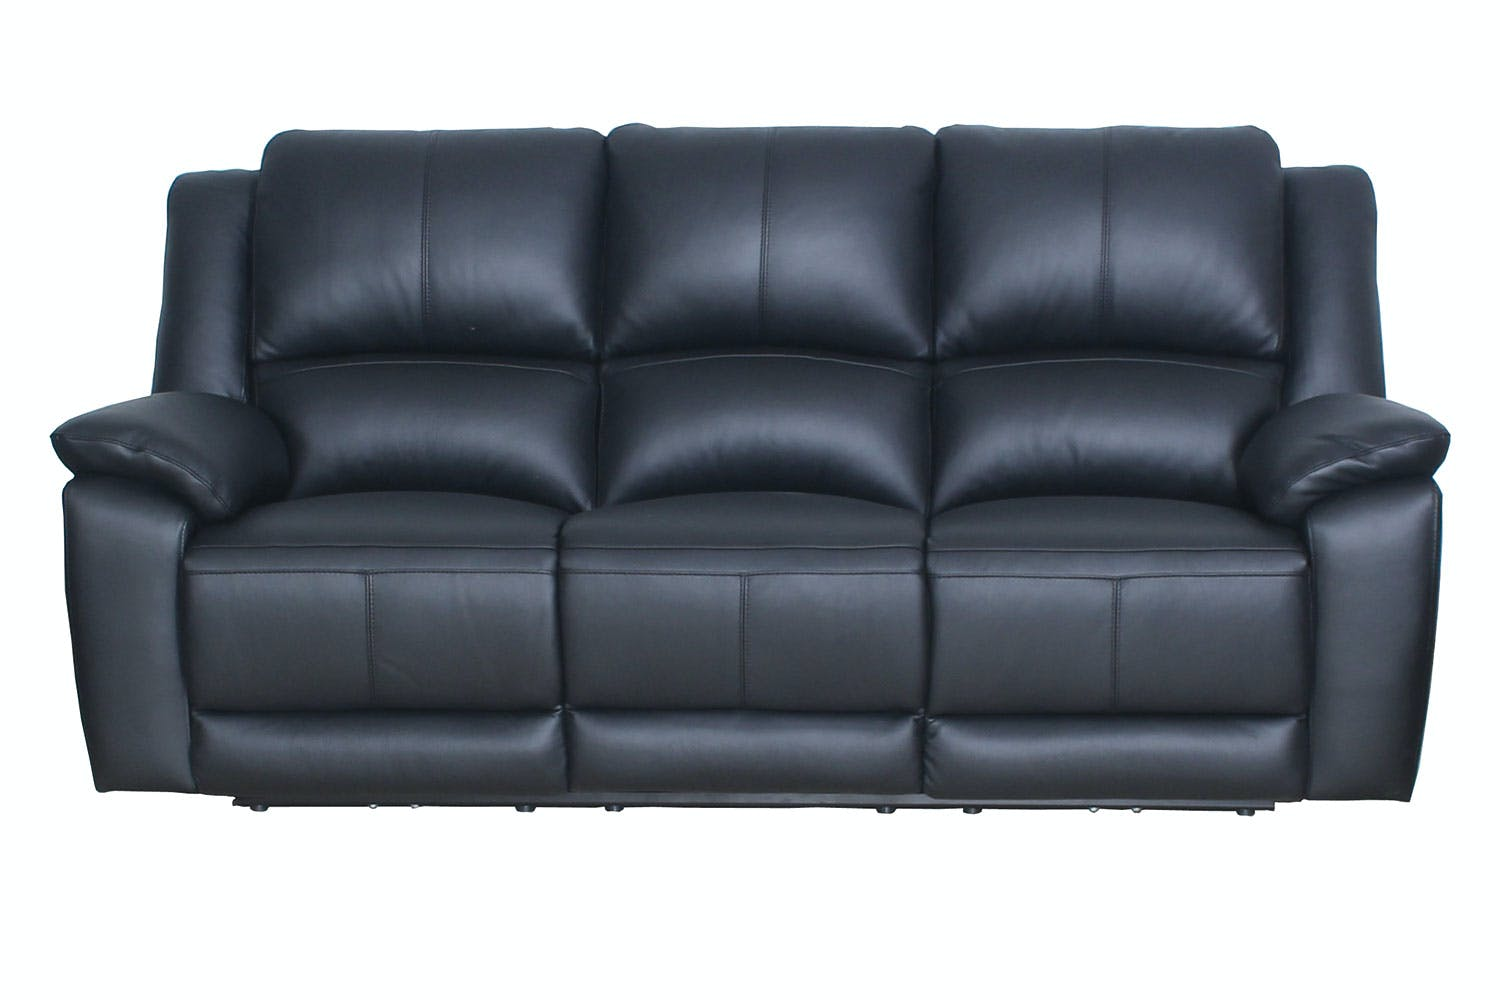 3 Seater Ed Leather Recliner Sofa